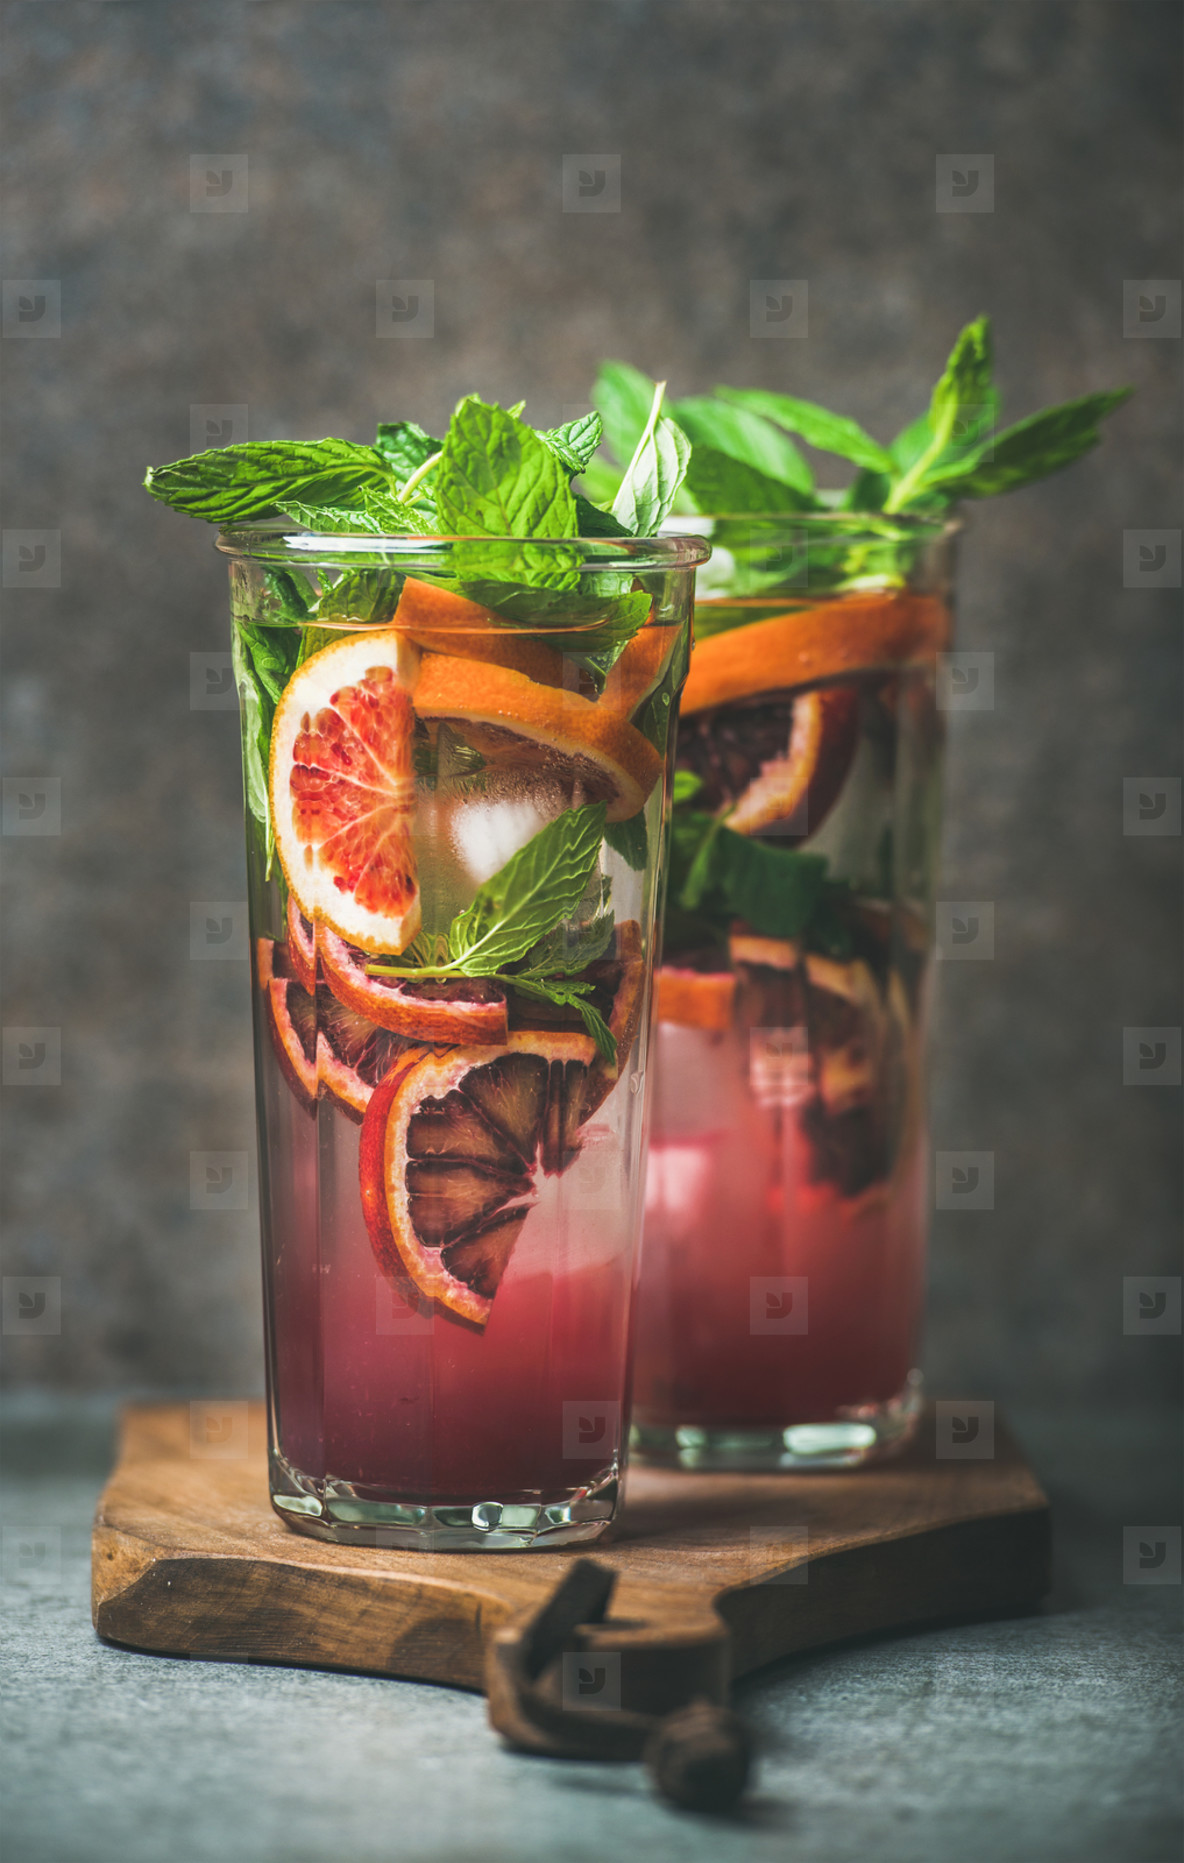 Blood orange citrus lemonade with mint and ice in glasses